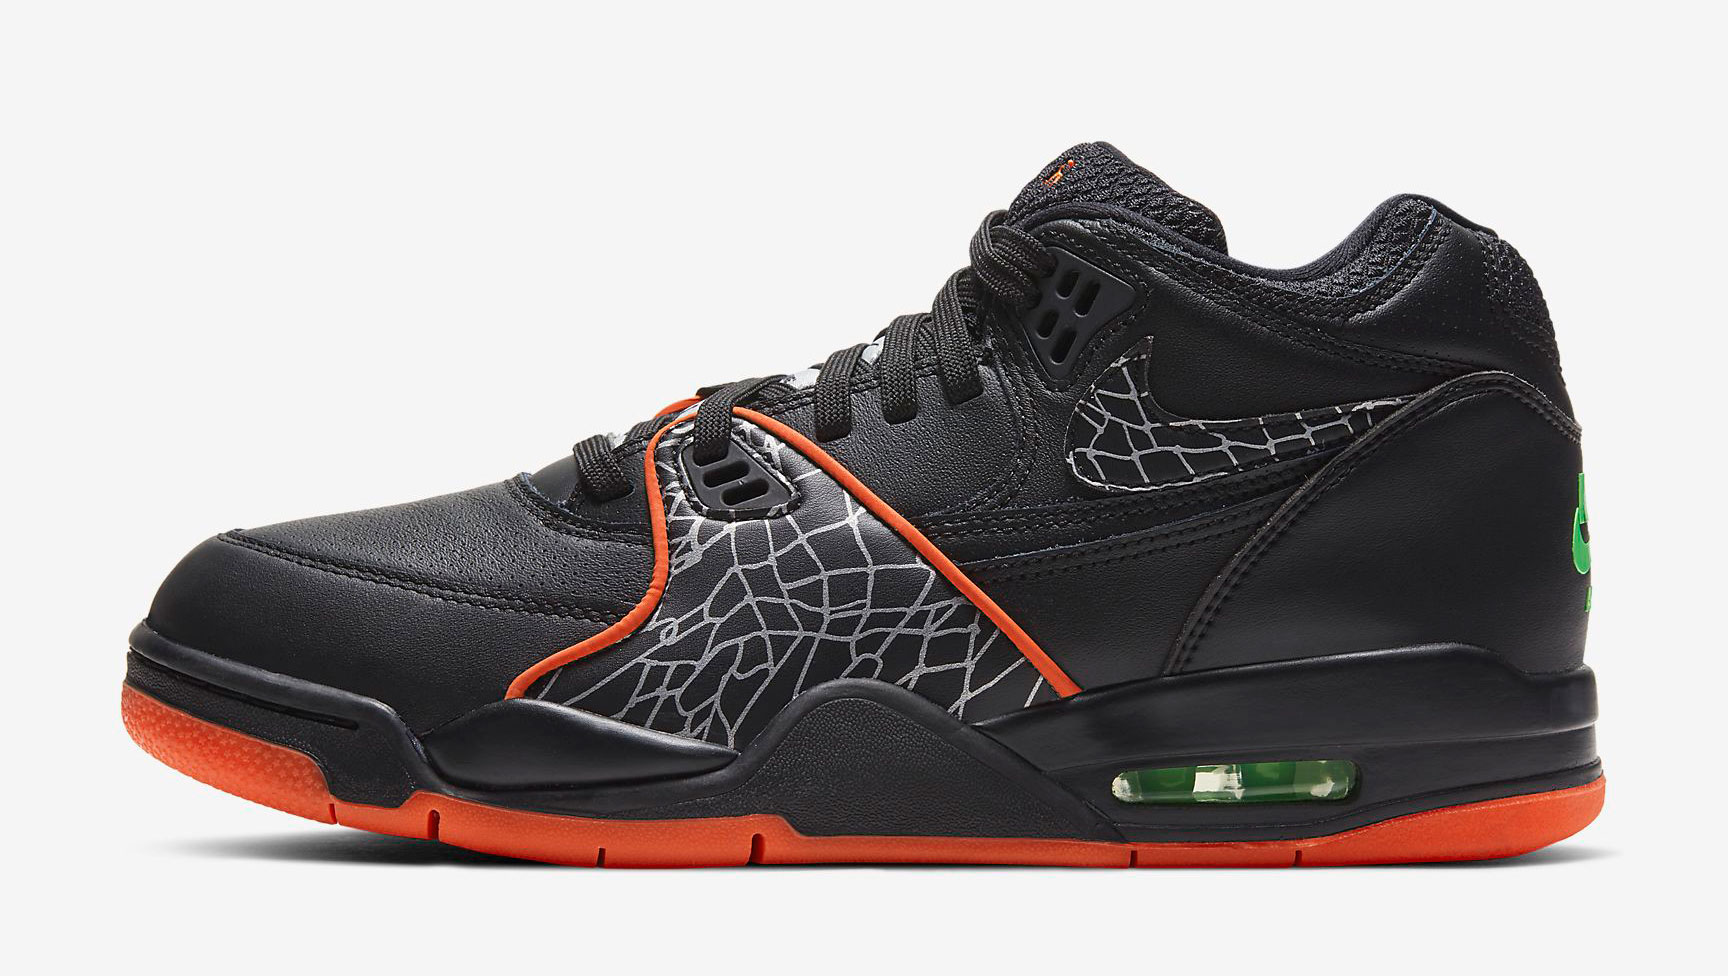 nike-air-flight-89-black-orange-blaze-release-date